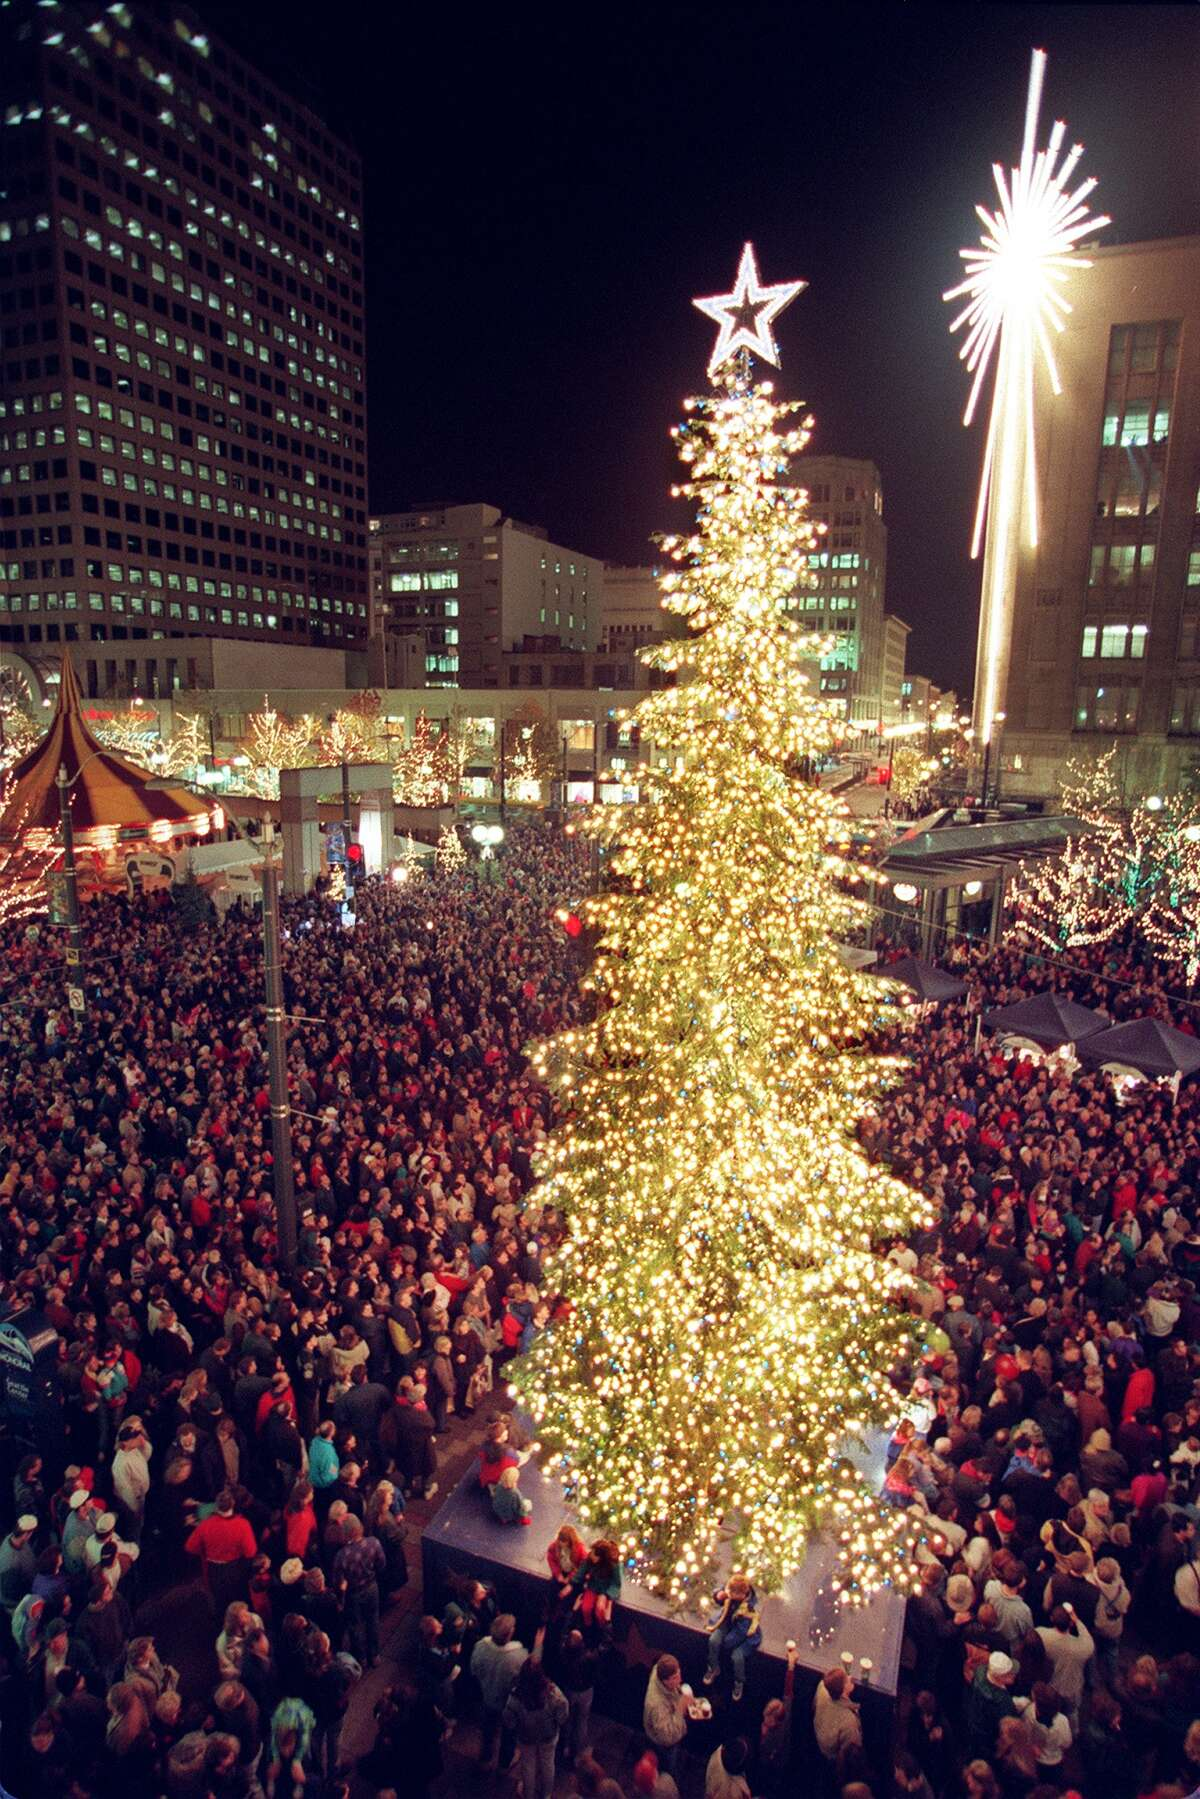 Opened in 1988, Westlake Center has hosted Seattle's giant tree-lighting ceremony for more than two decades. But what was Seattle's big-city event before the tree took over?